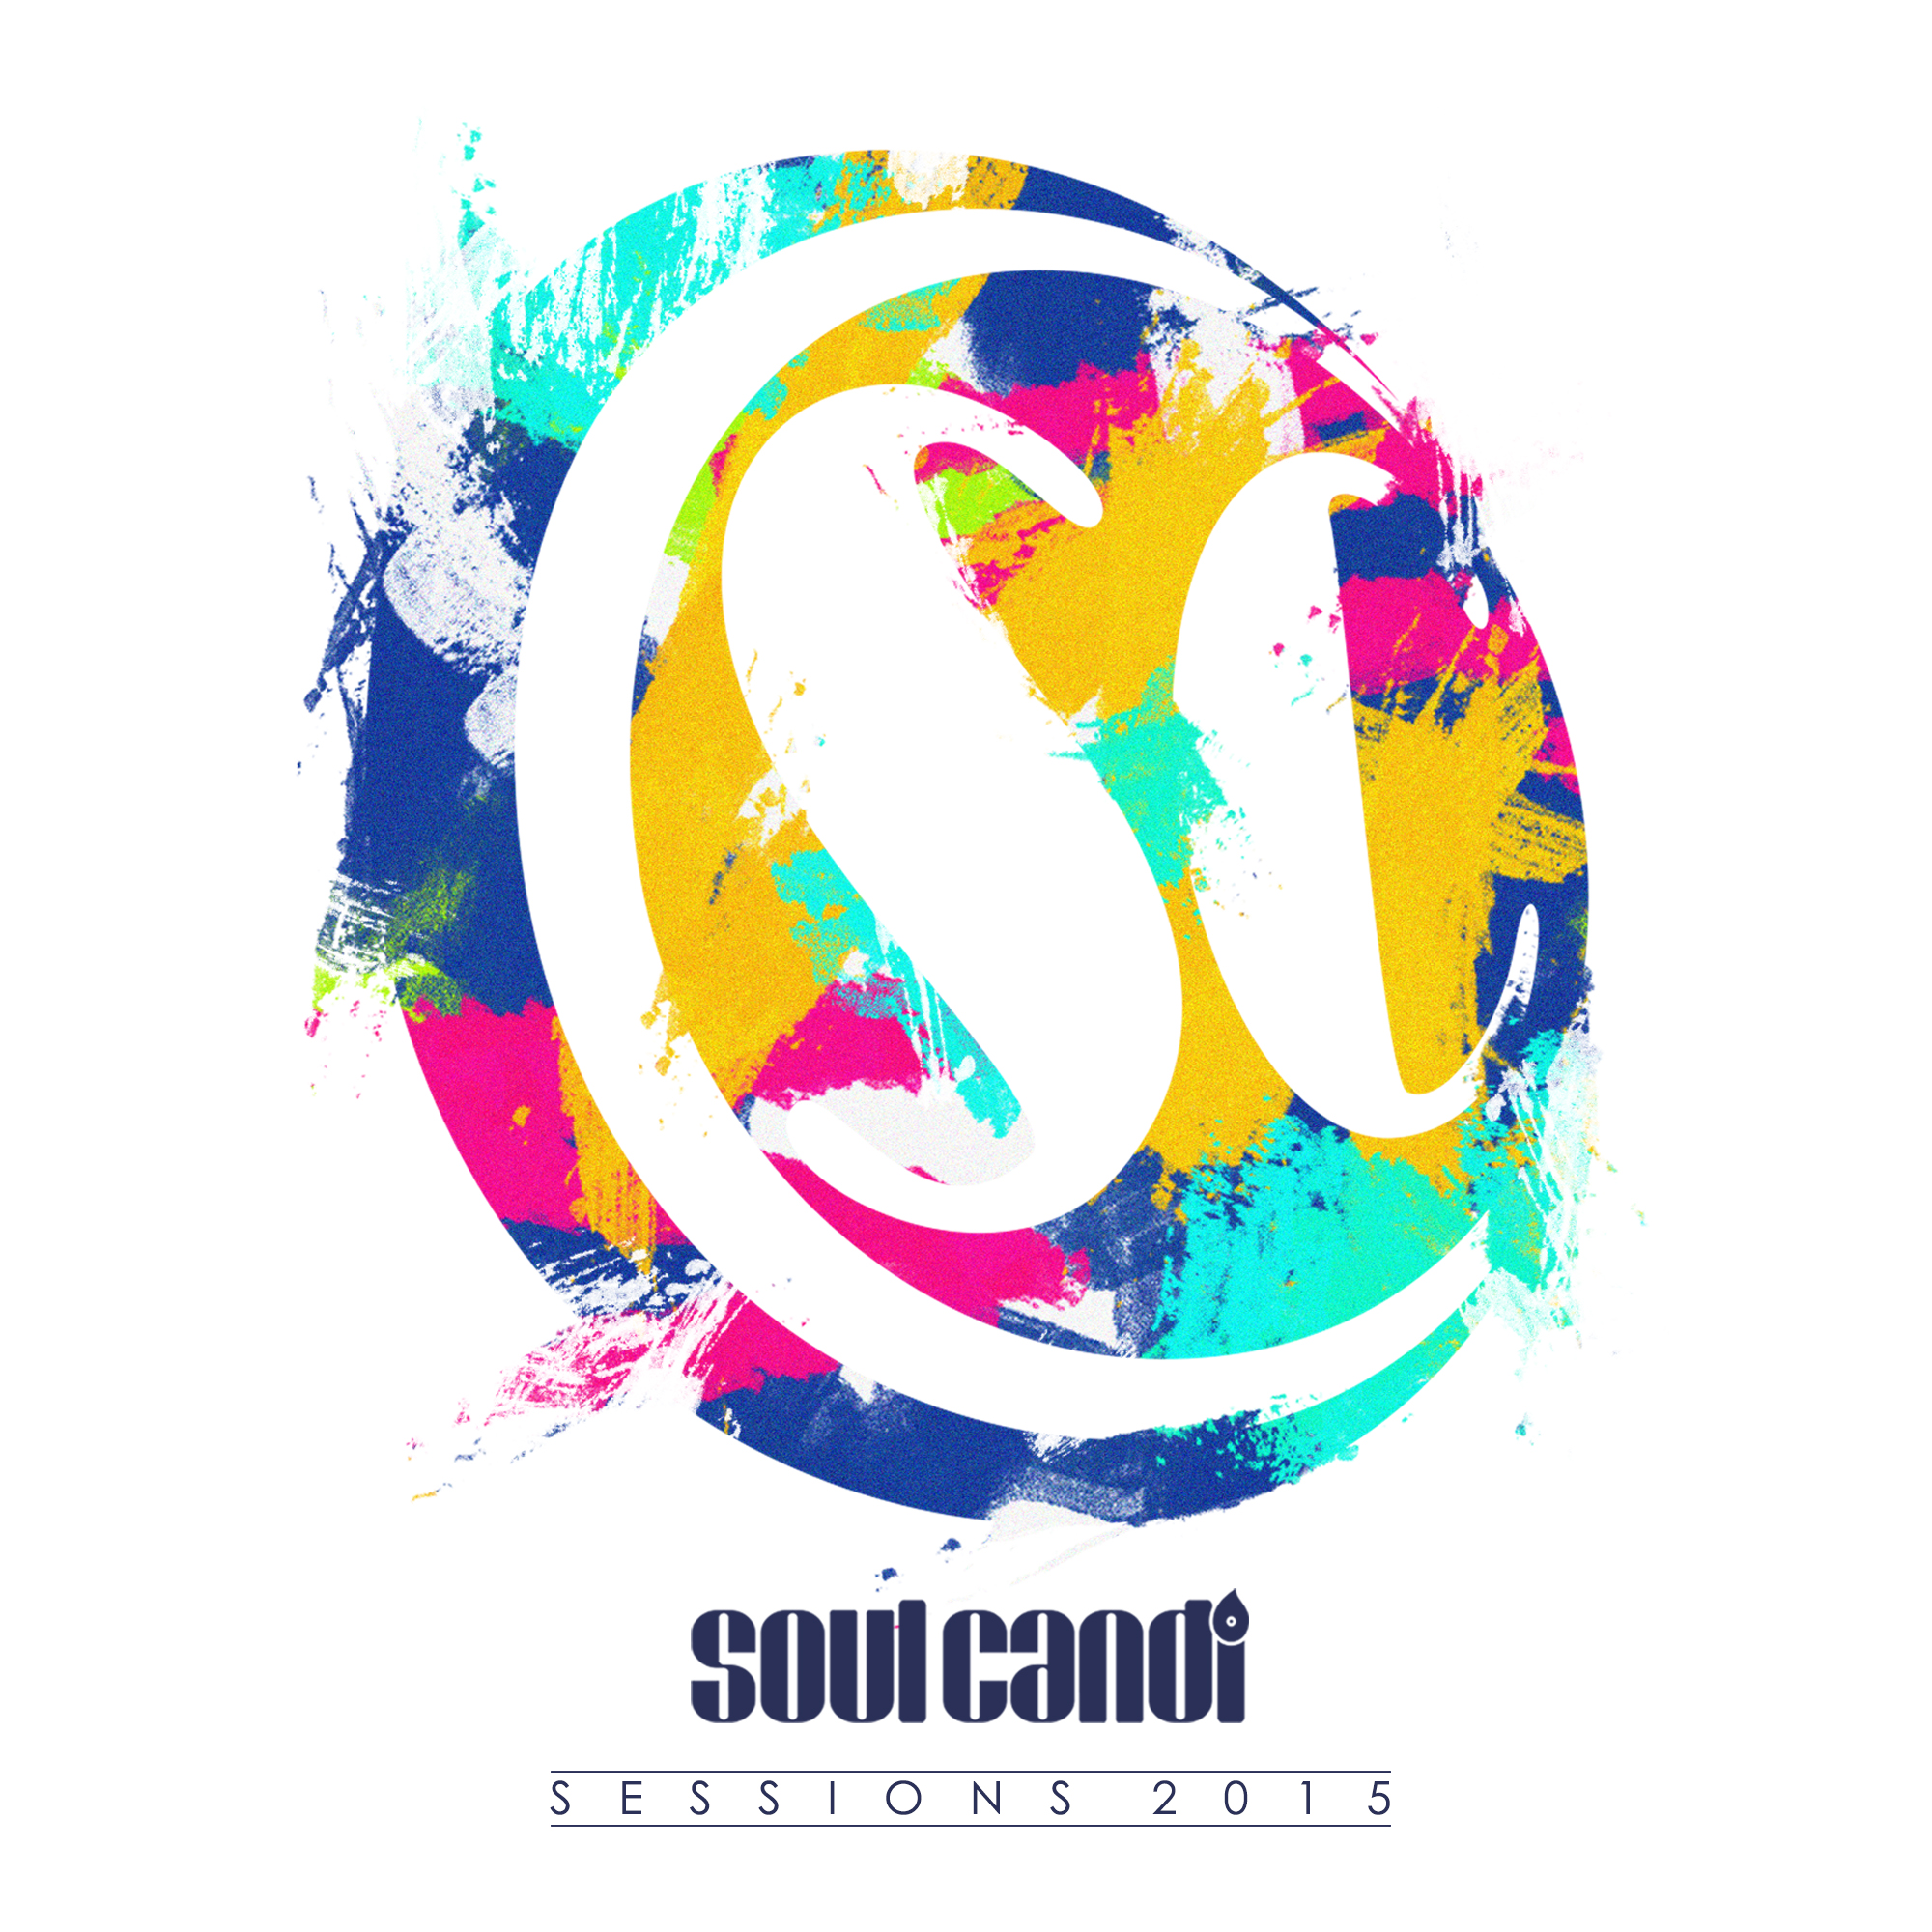 Soul Candi Sessions 2015 Album Cover